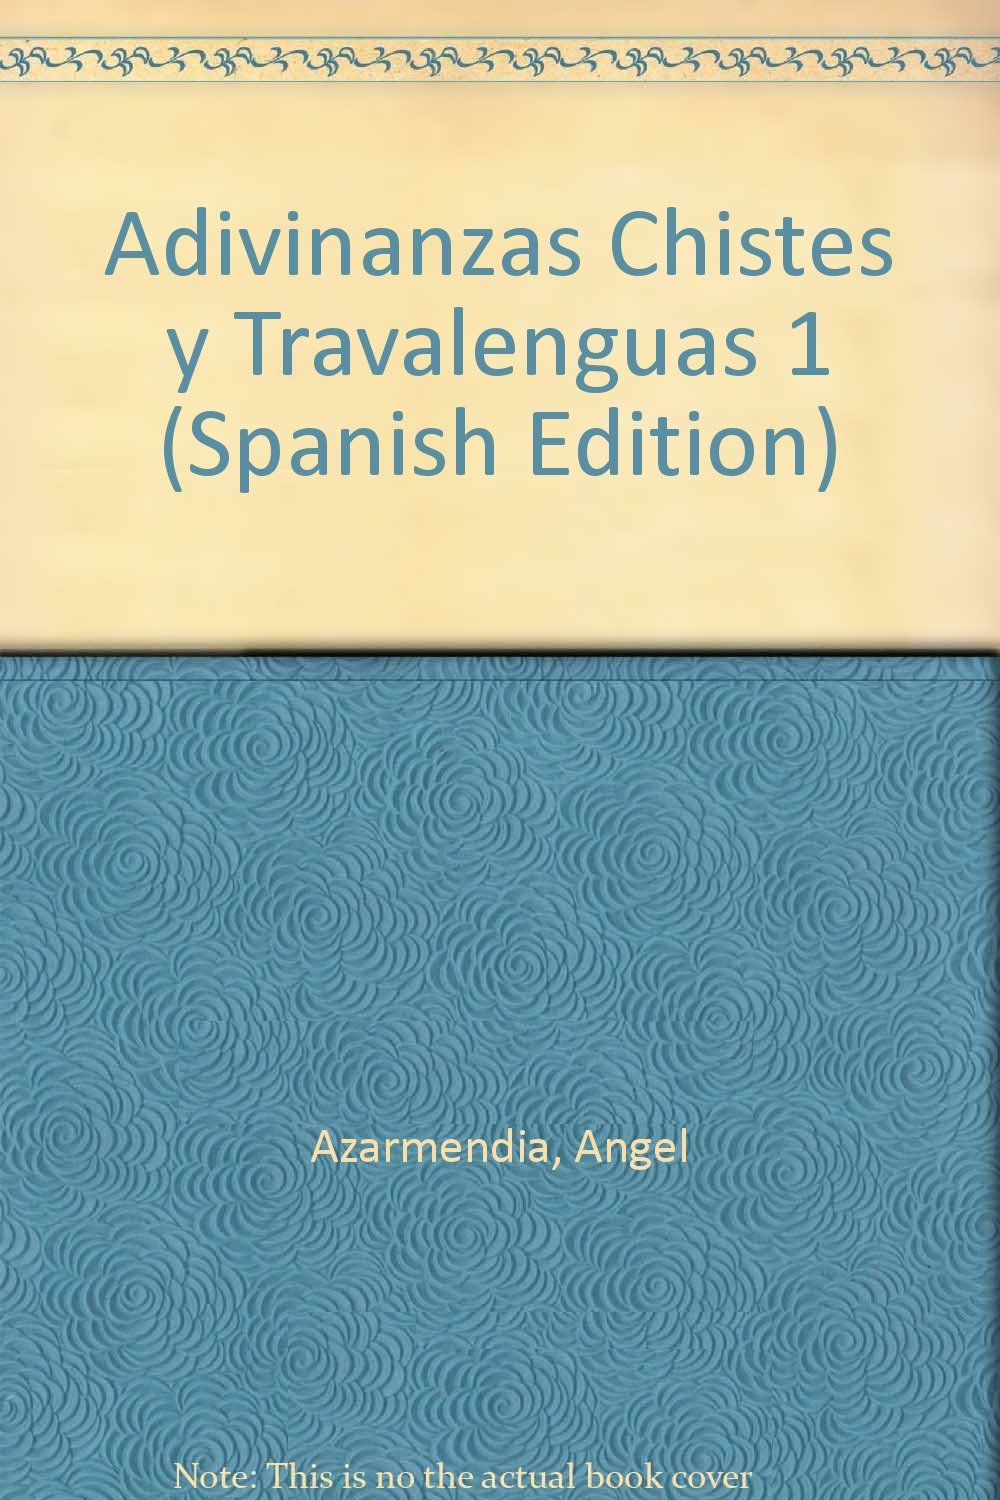 Download Adivinanzas Chistes y Travalenguas 1 (Spanish Edition) ebook